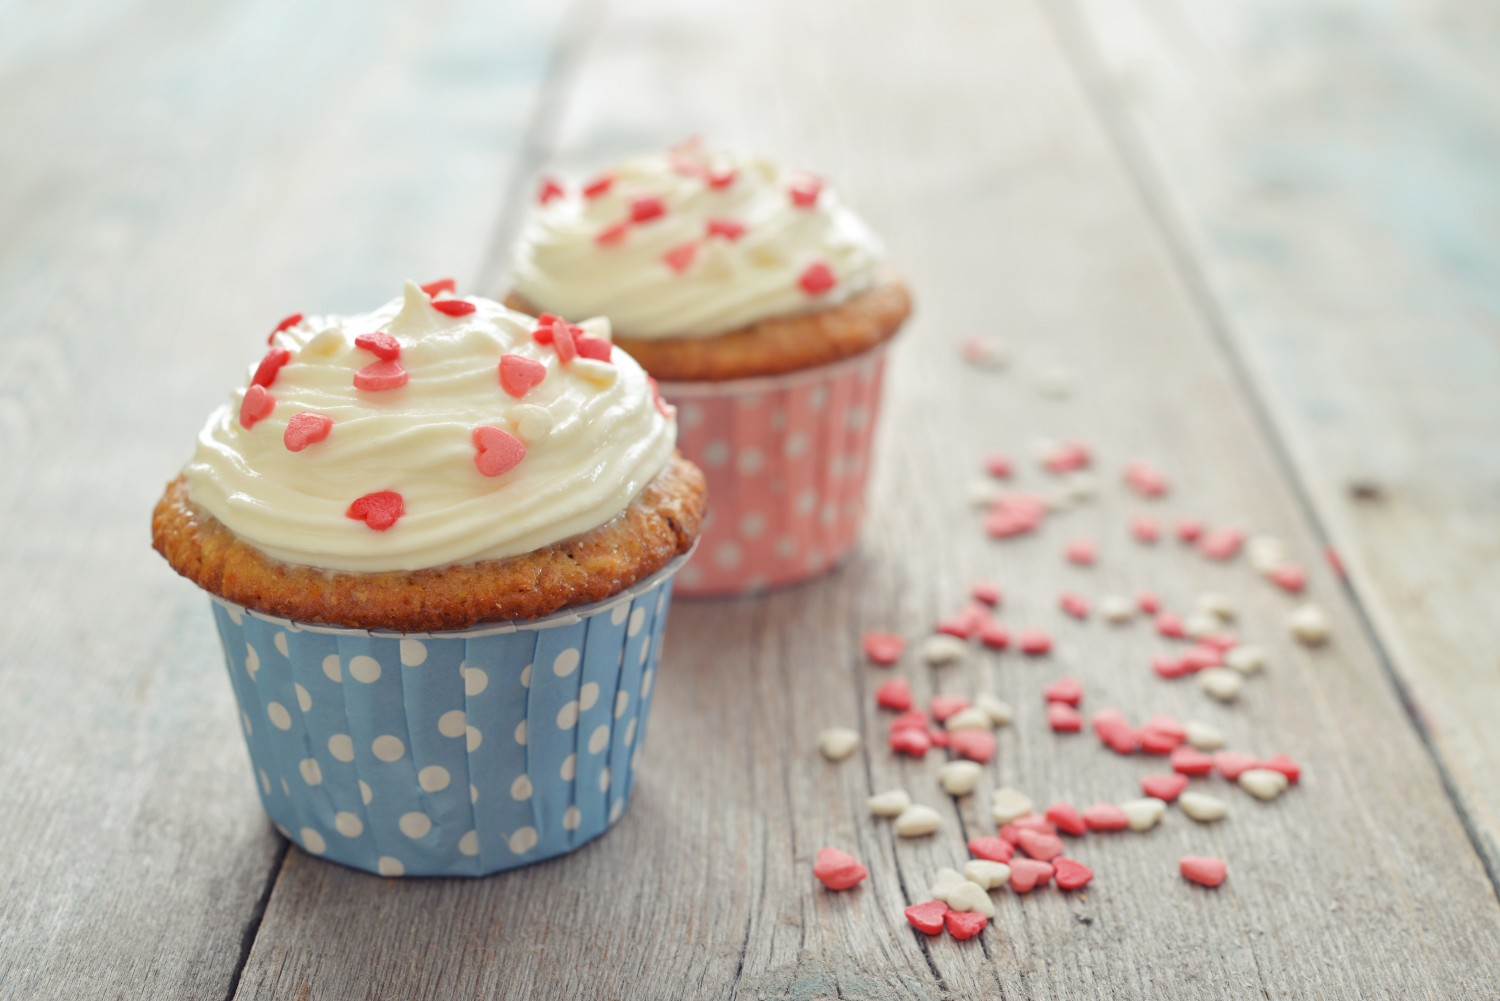 Walmart Is Giving Away FREE Cupcakes This Sunday